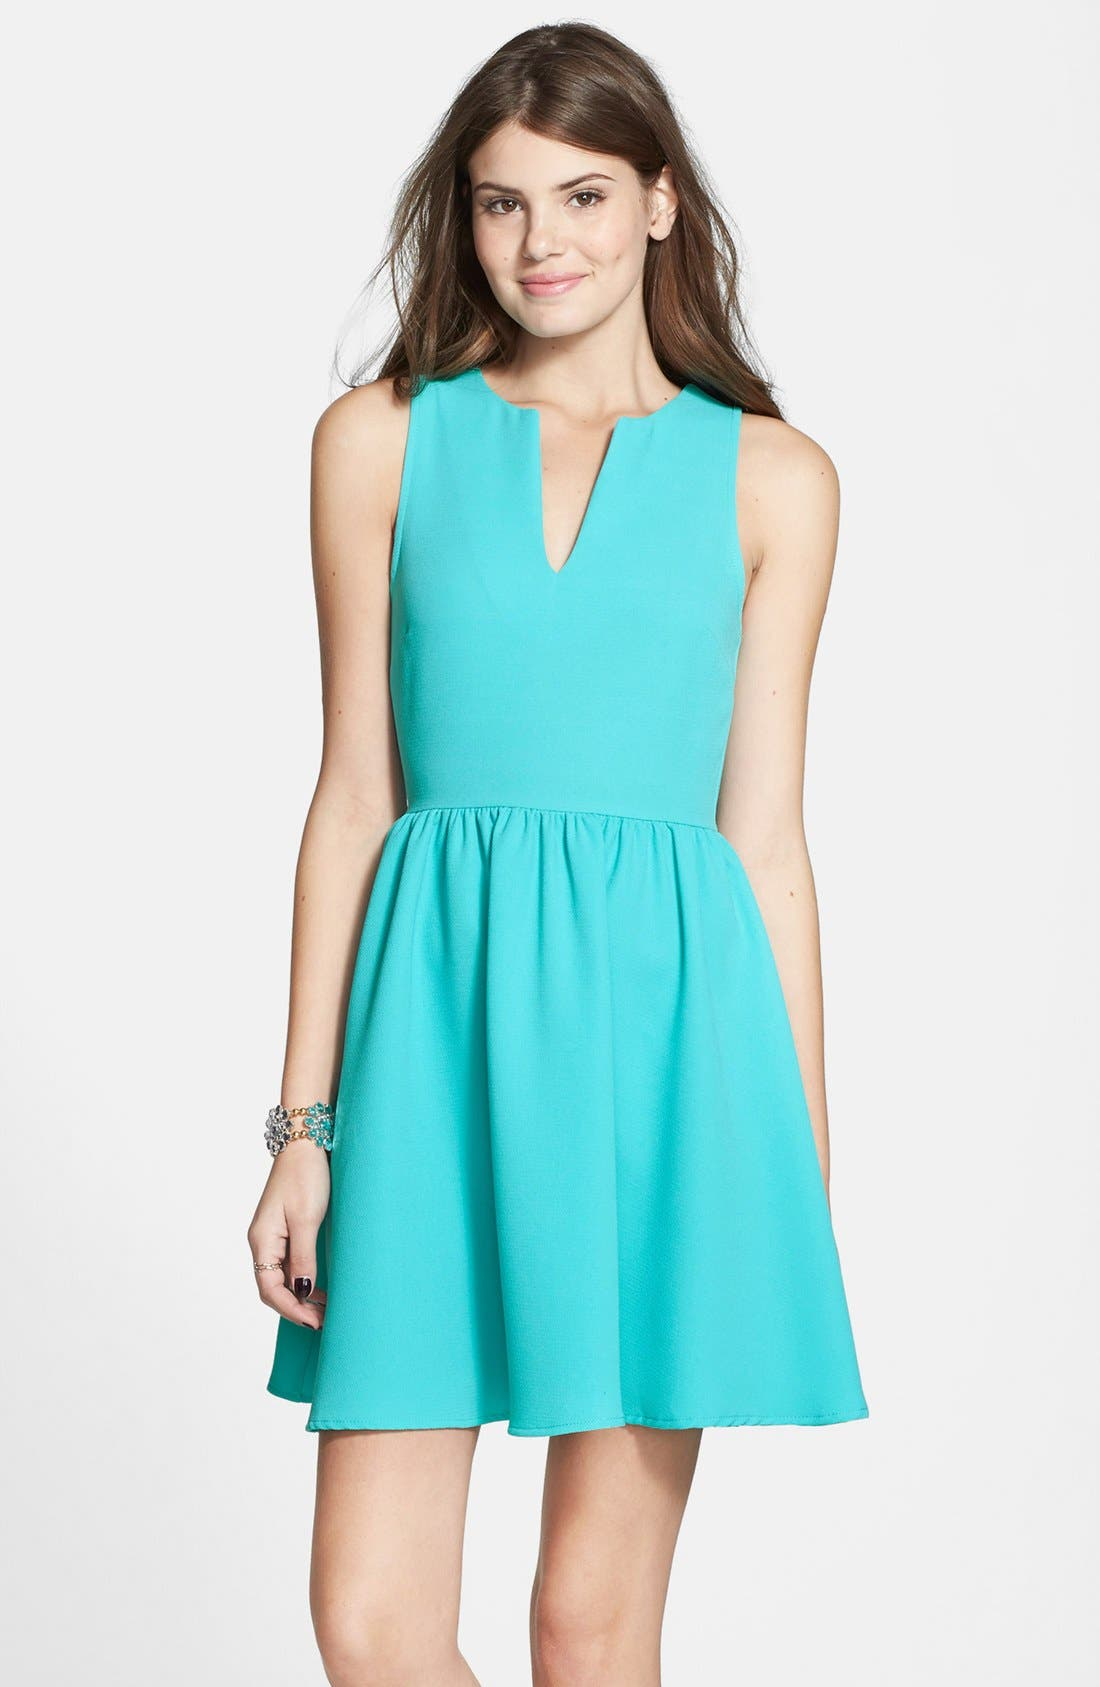 Alternate Image 1 Selected - Everly Notch Neck Skater Dress (Juniors)